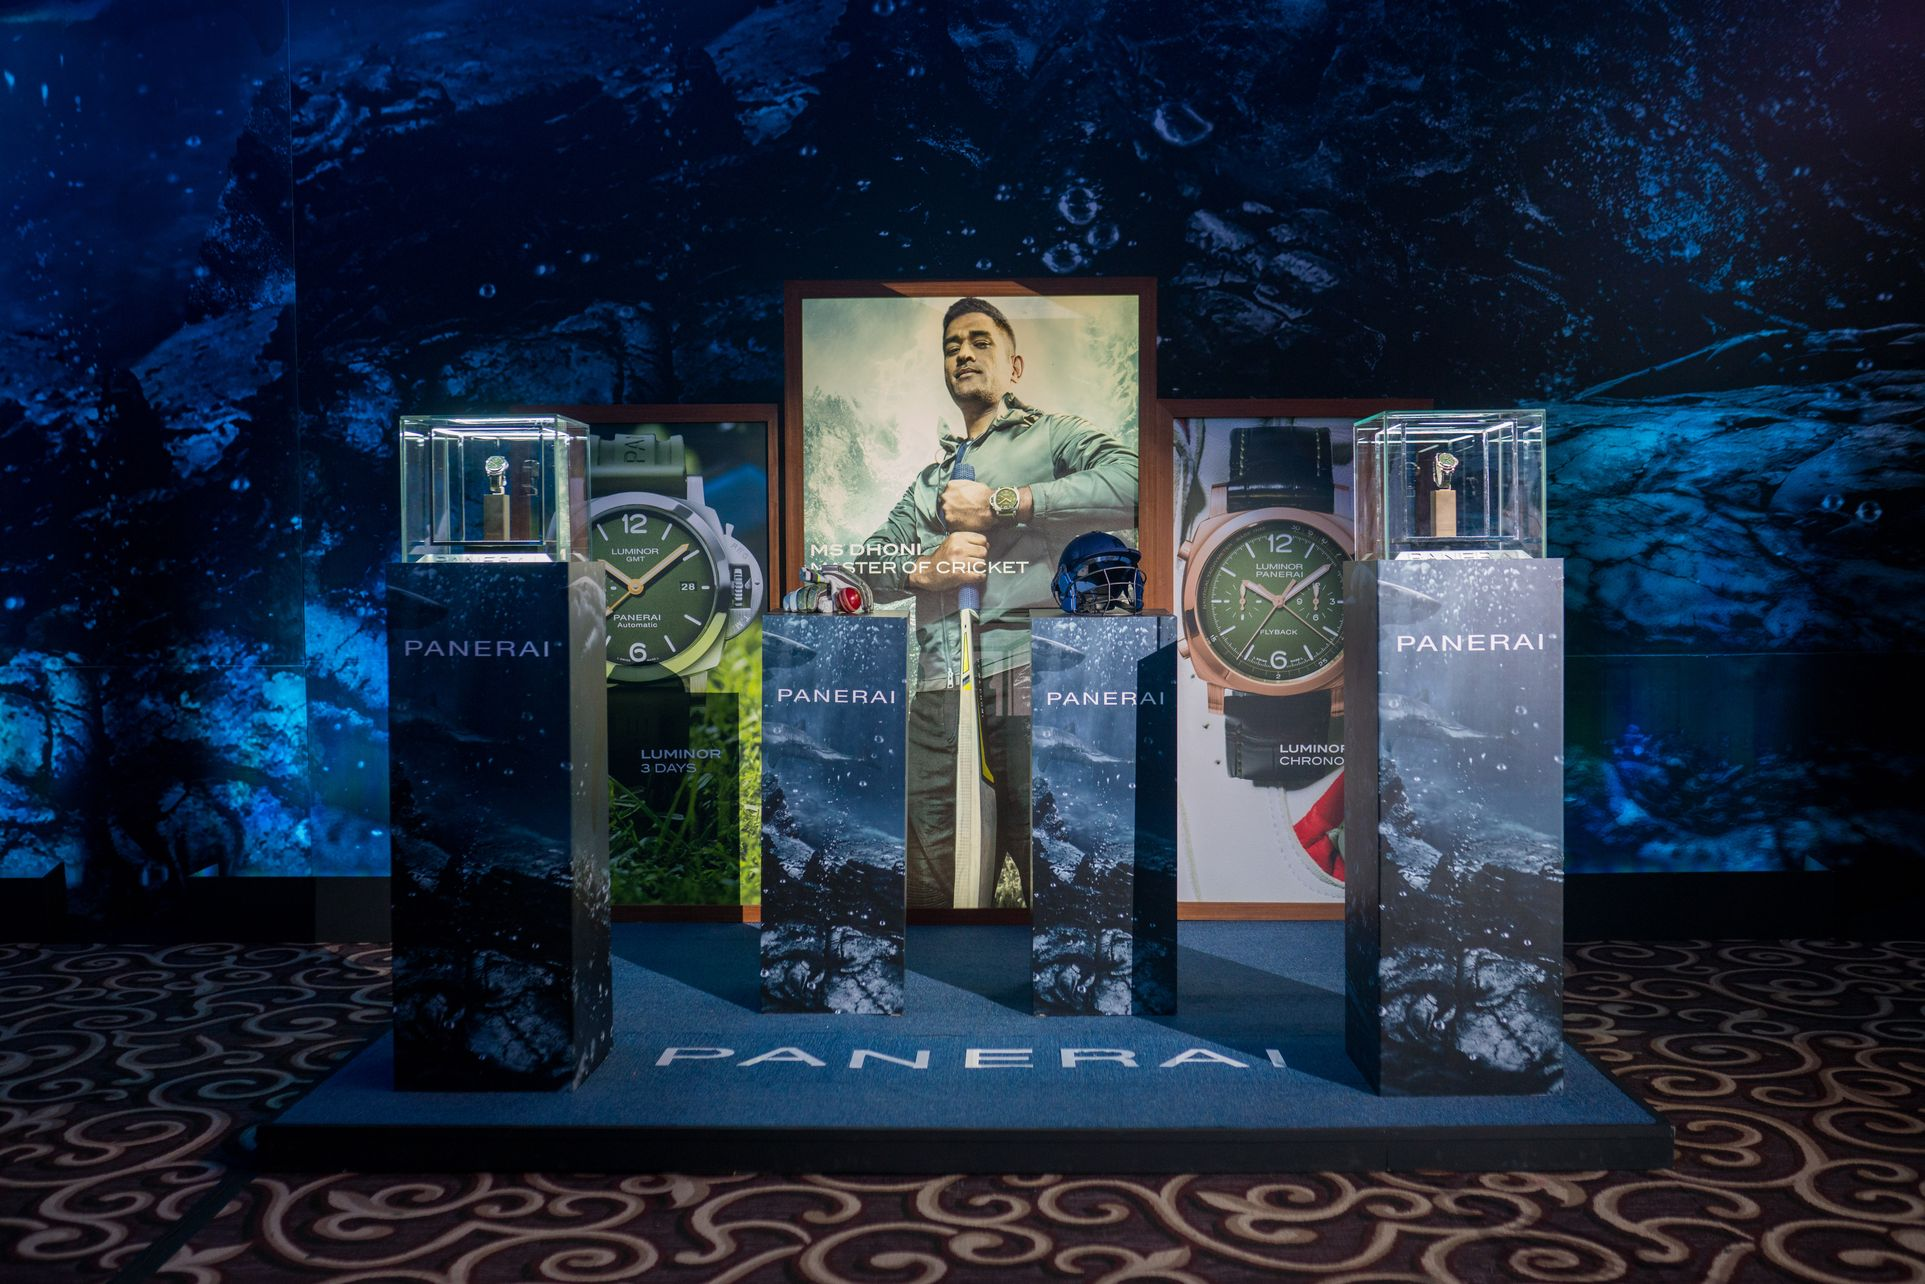 ms dhoni panerai00146 - Panerai plays the helicopter shot with MS Dhoni special edition watches